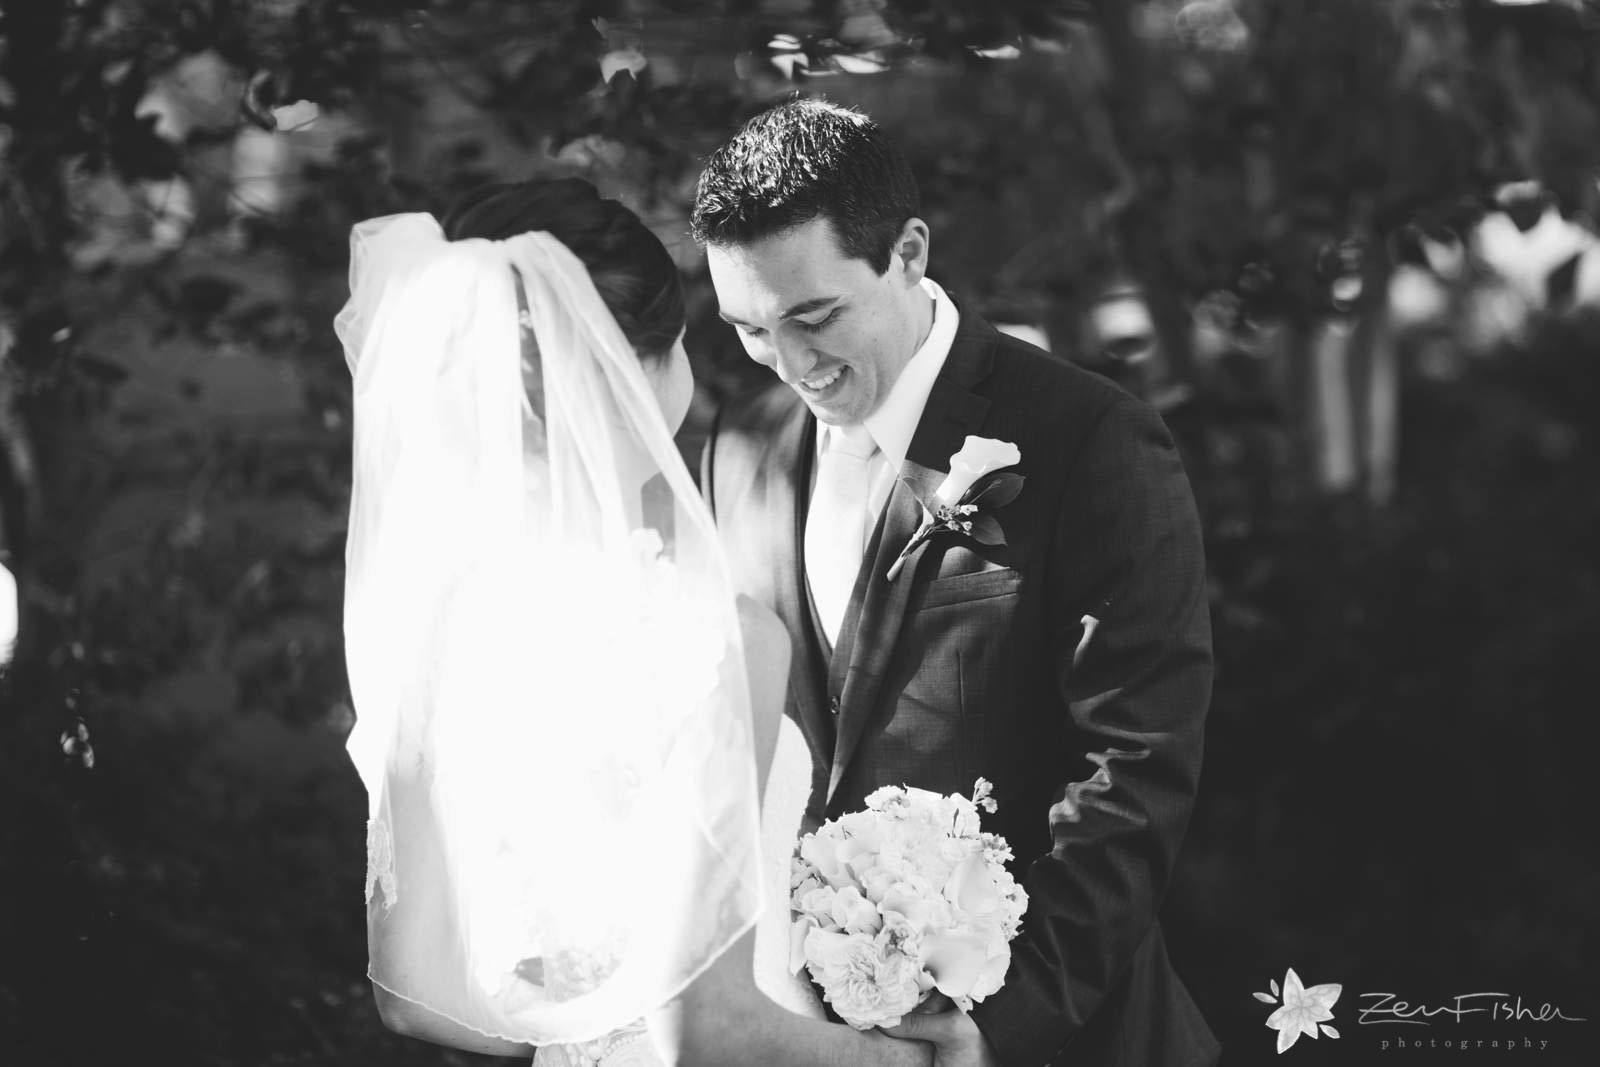 Groom sees bride for the first time, groom looking at bride during first look, black and white